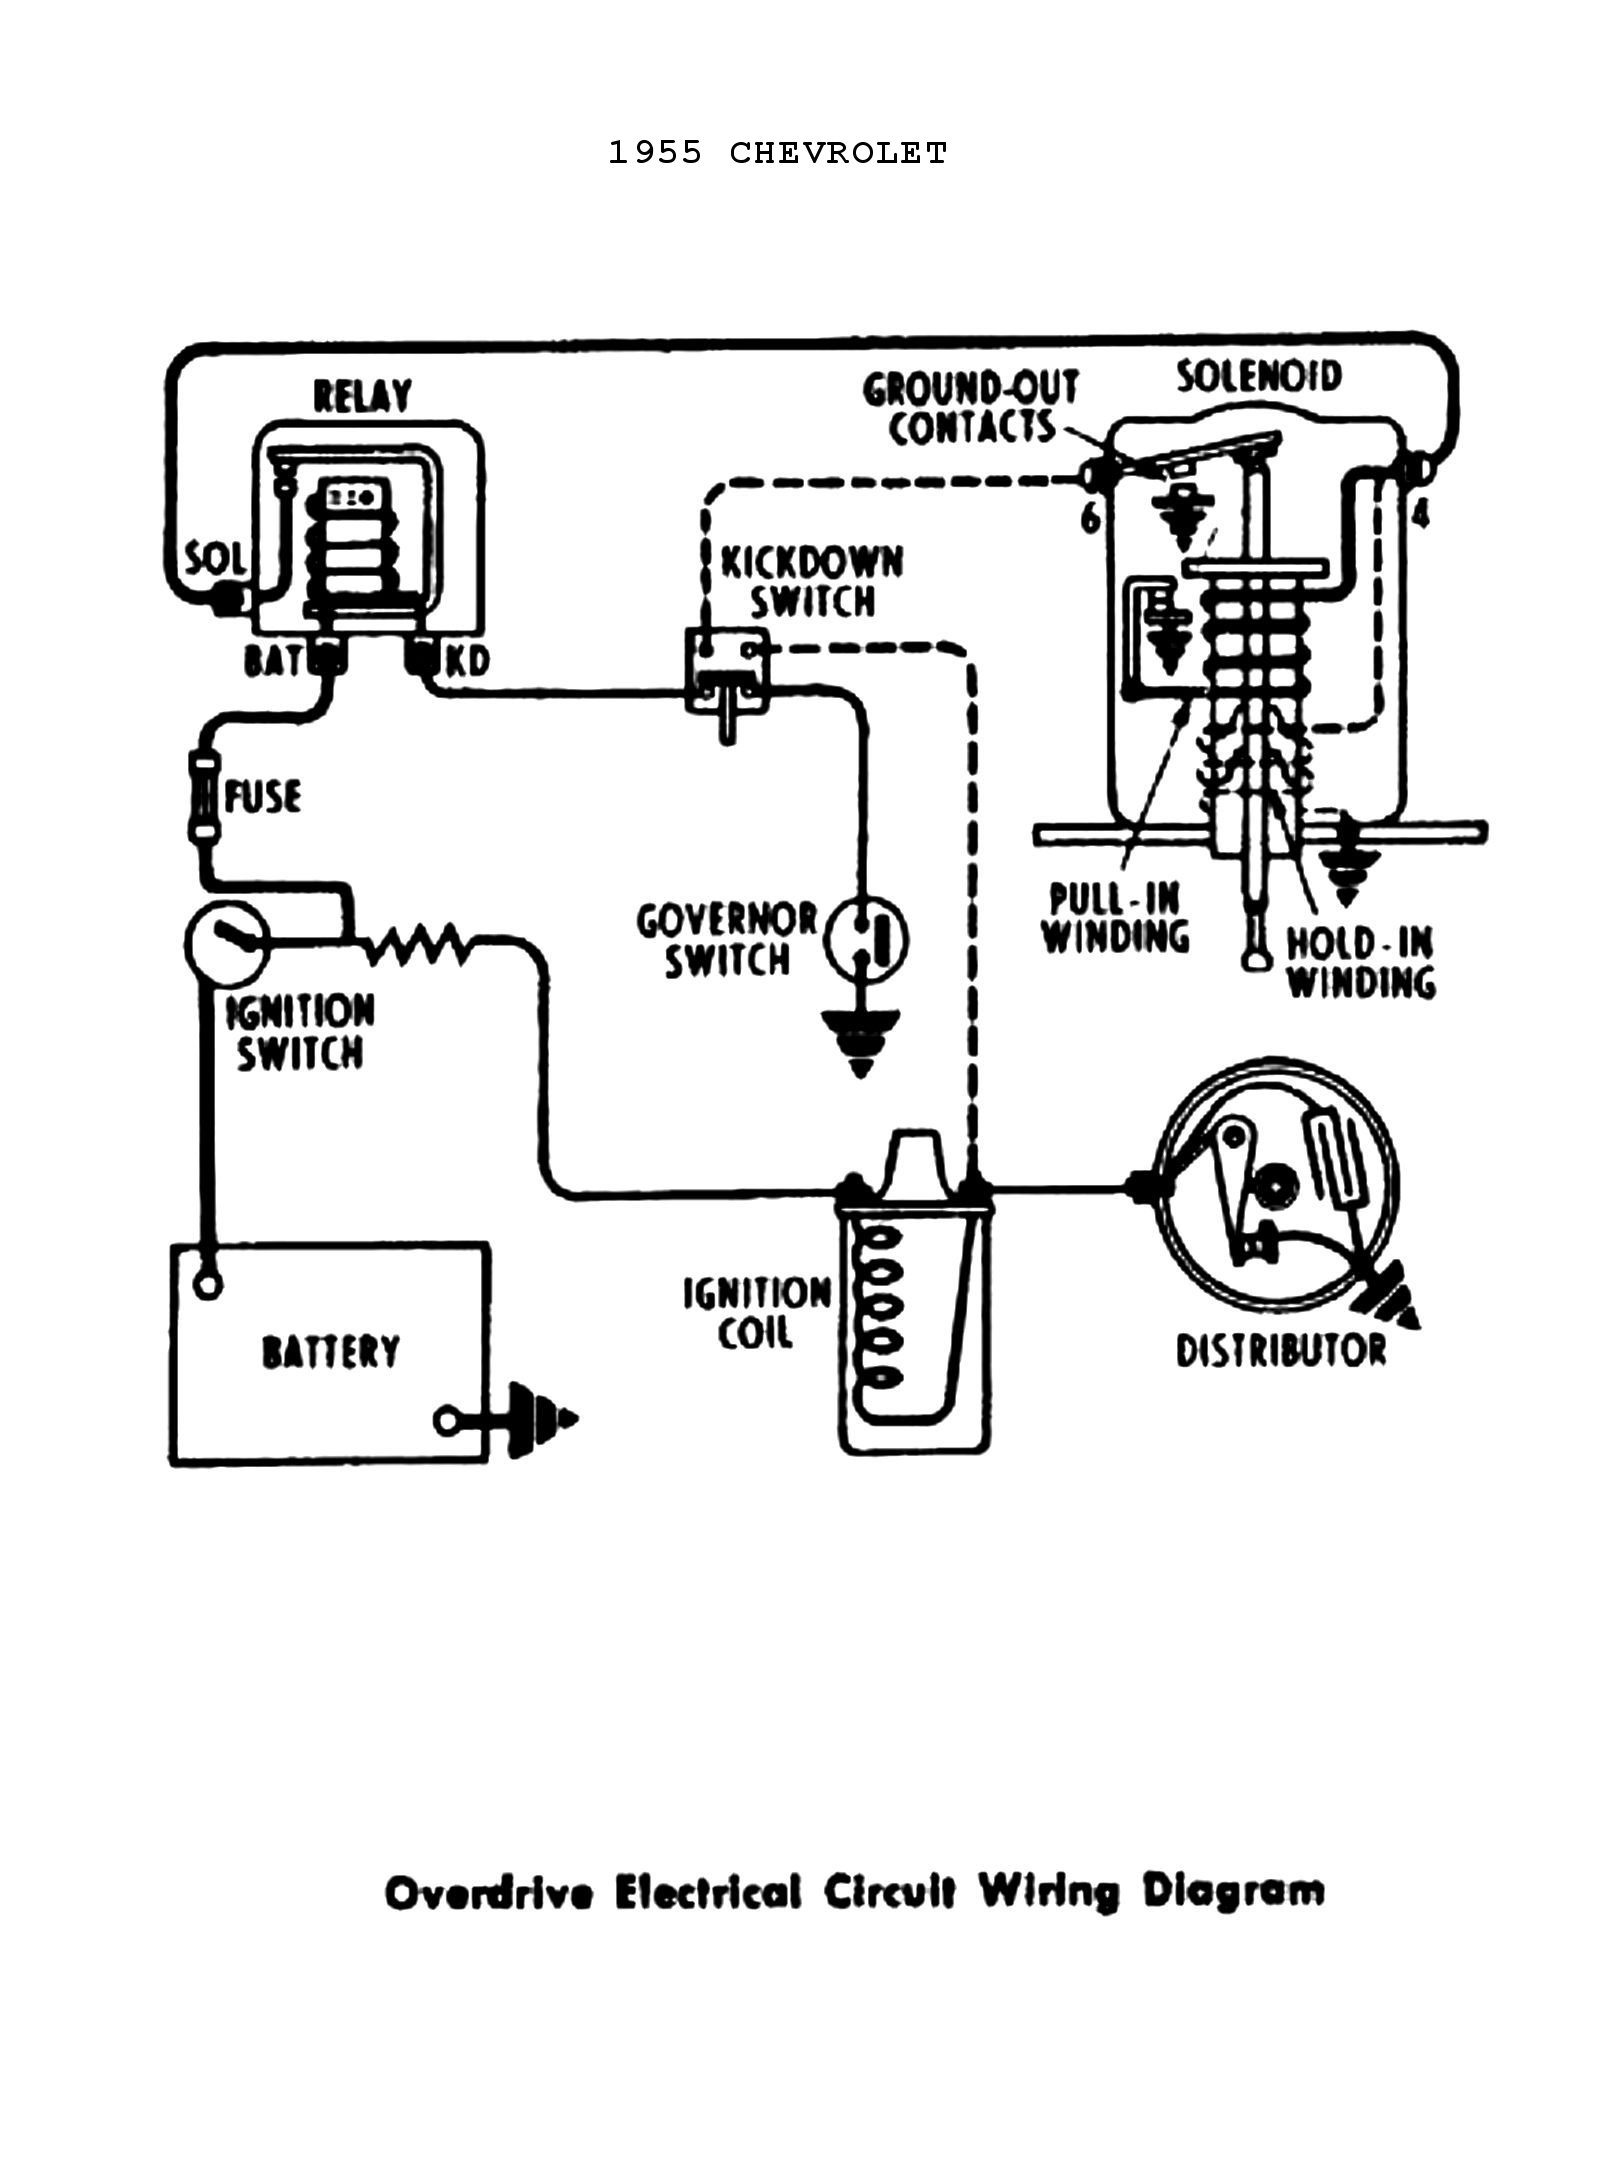 55odtrans1 chevy wiring diagrams 1955 chevy ignition switch wiring diagram at alyssarenee.co